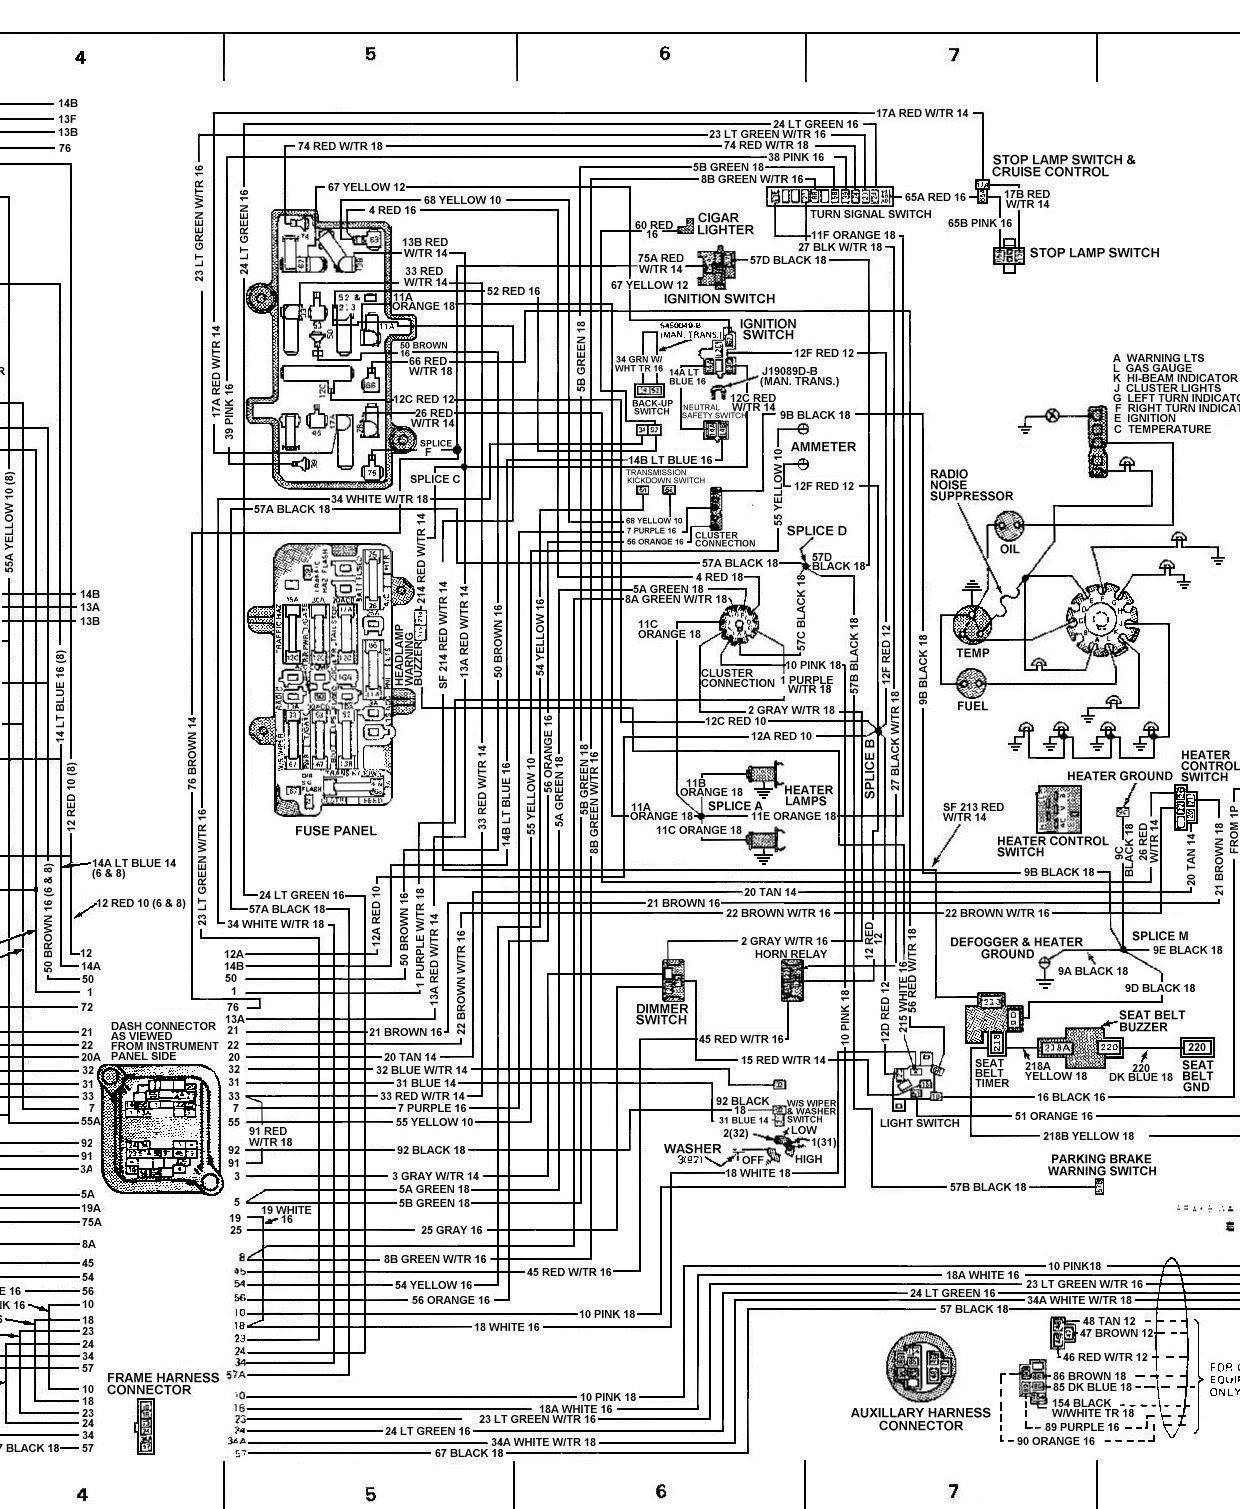 Chevy Wiring Diagrams Schematics Avalanche 2004 1500 Pinterest Volvo 240 Cruise Control Diagram